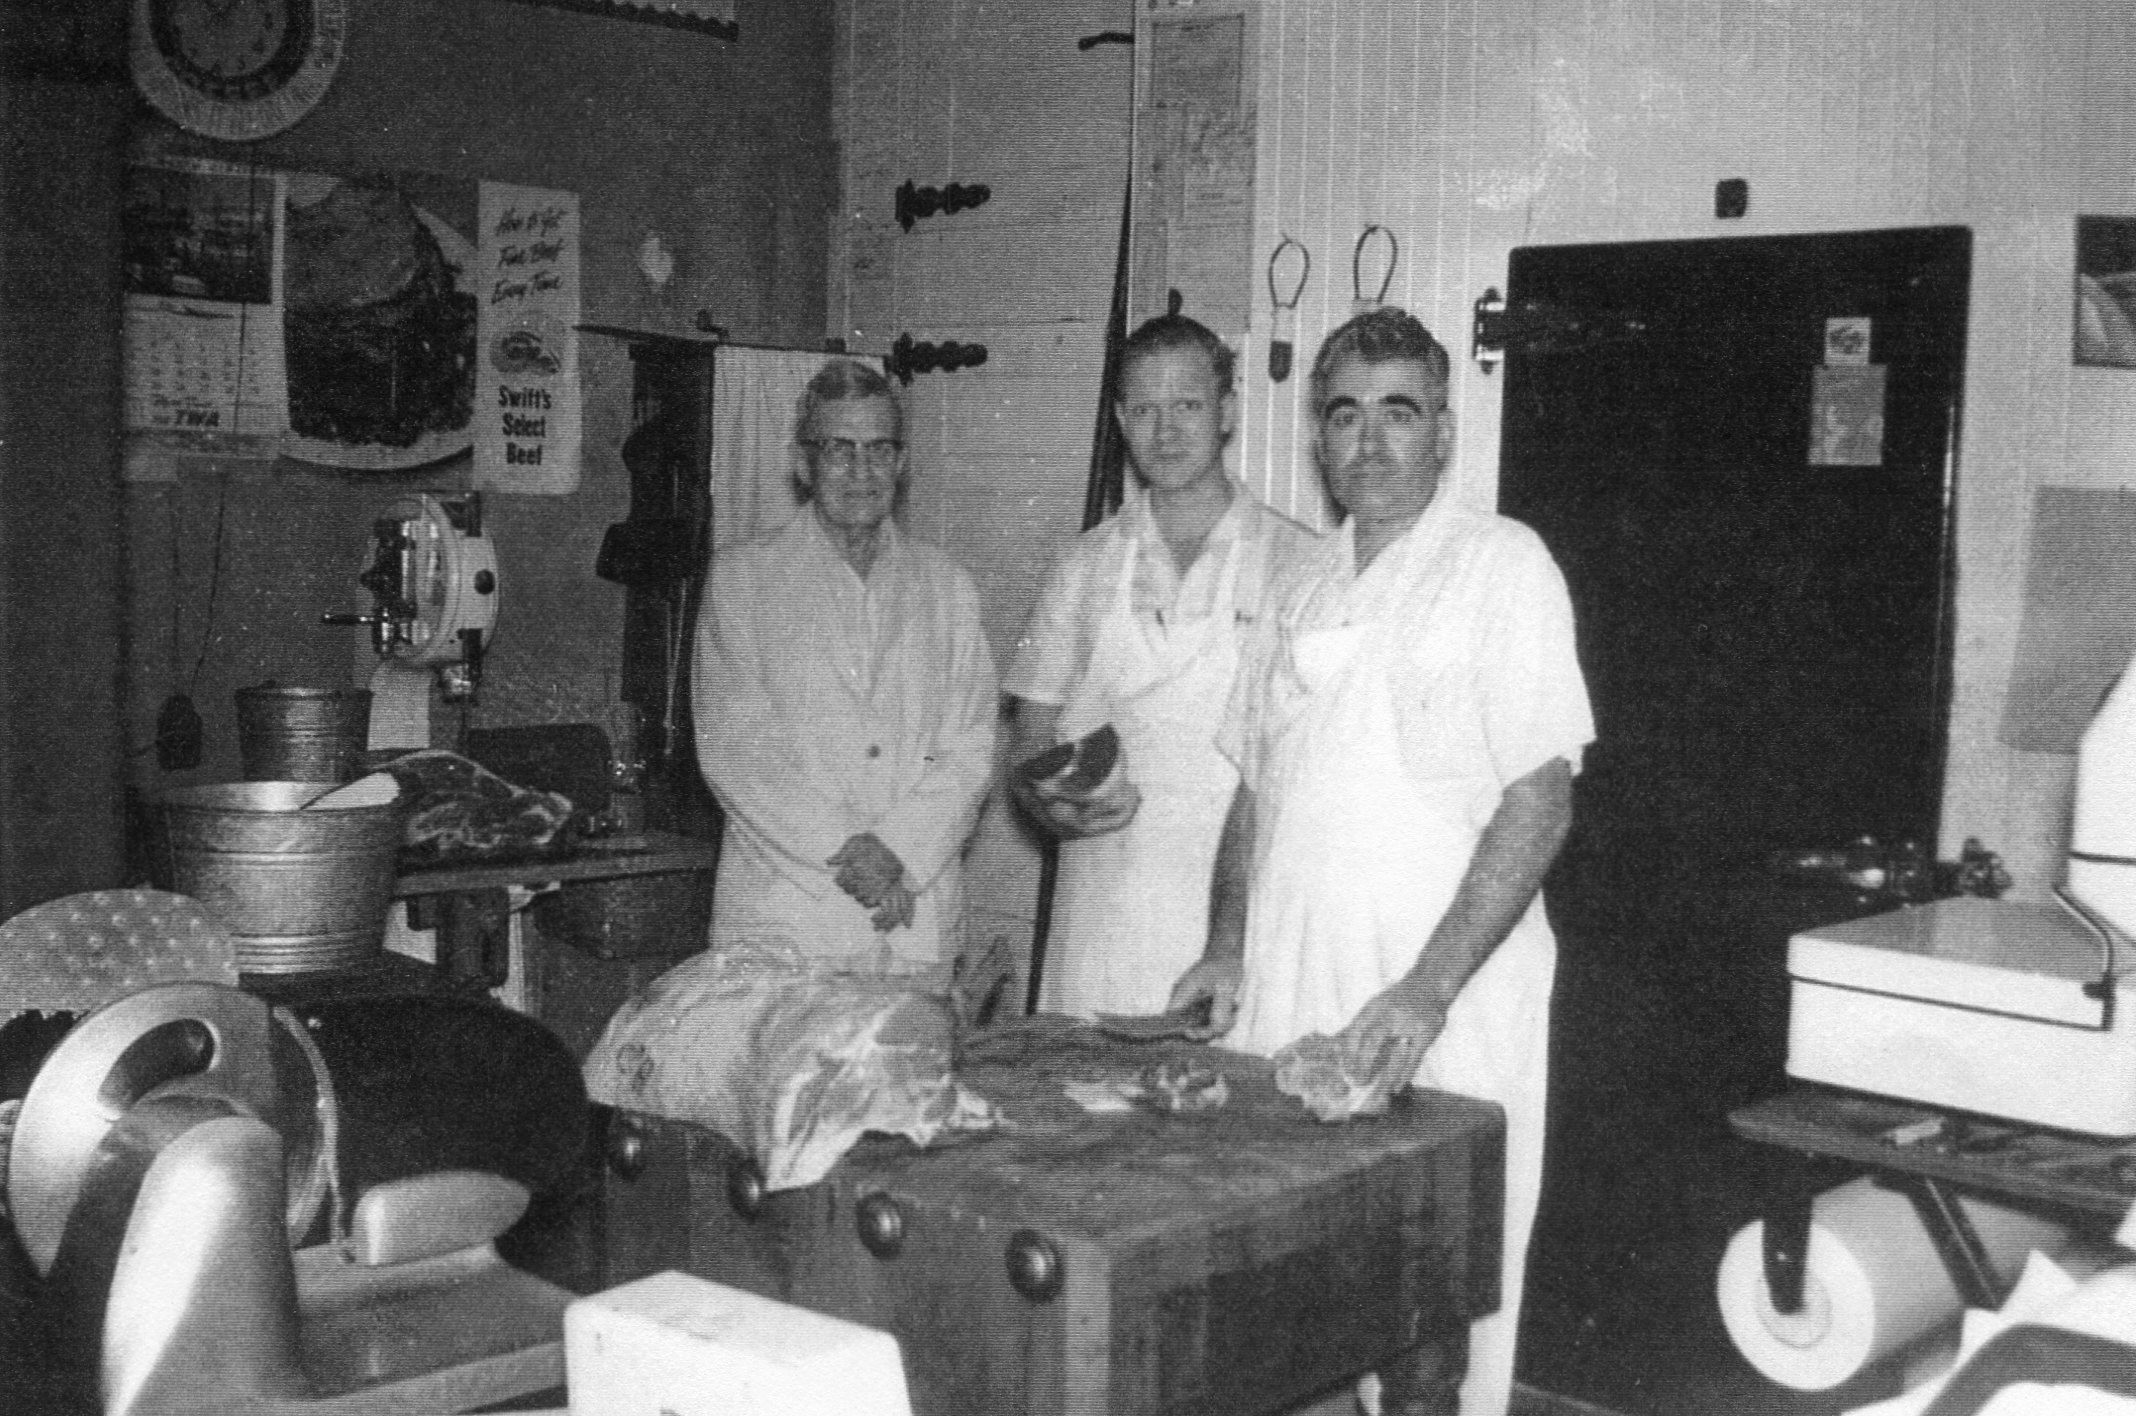 A view of the butcher's area inside Vawter's Super Market during the late 1950s. Pictured are Mr. Vawter, Bill Vawter, and Wilbur Williams.